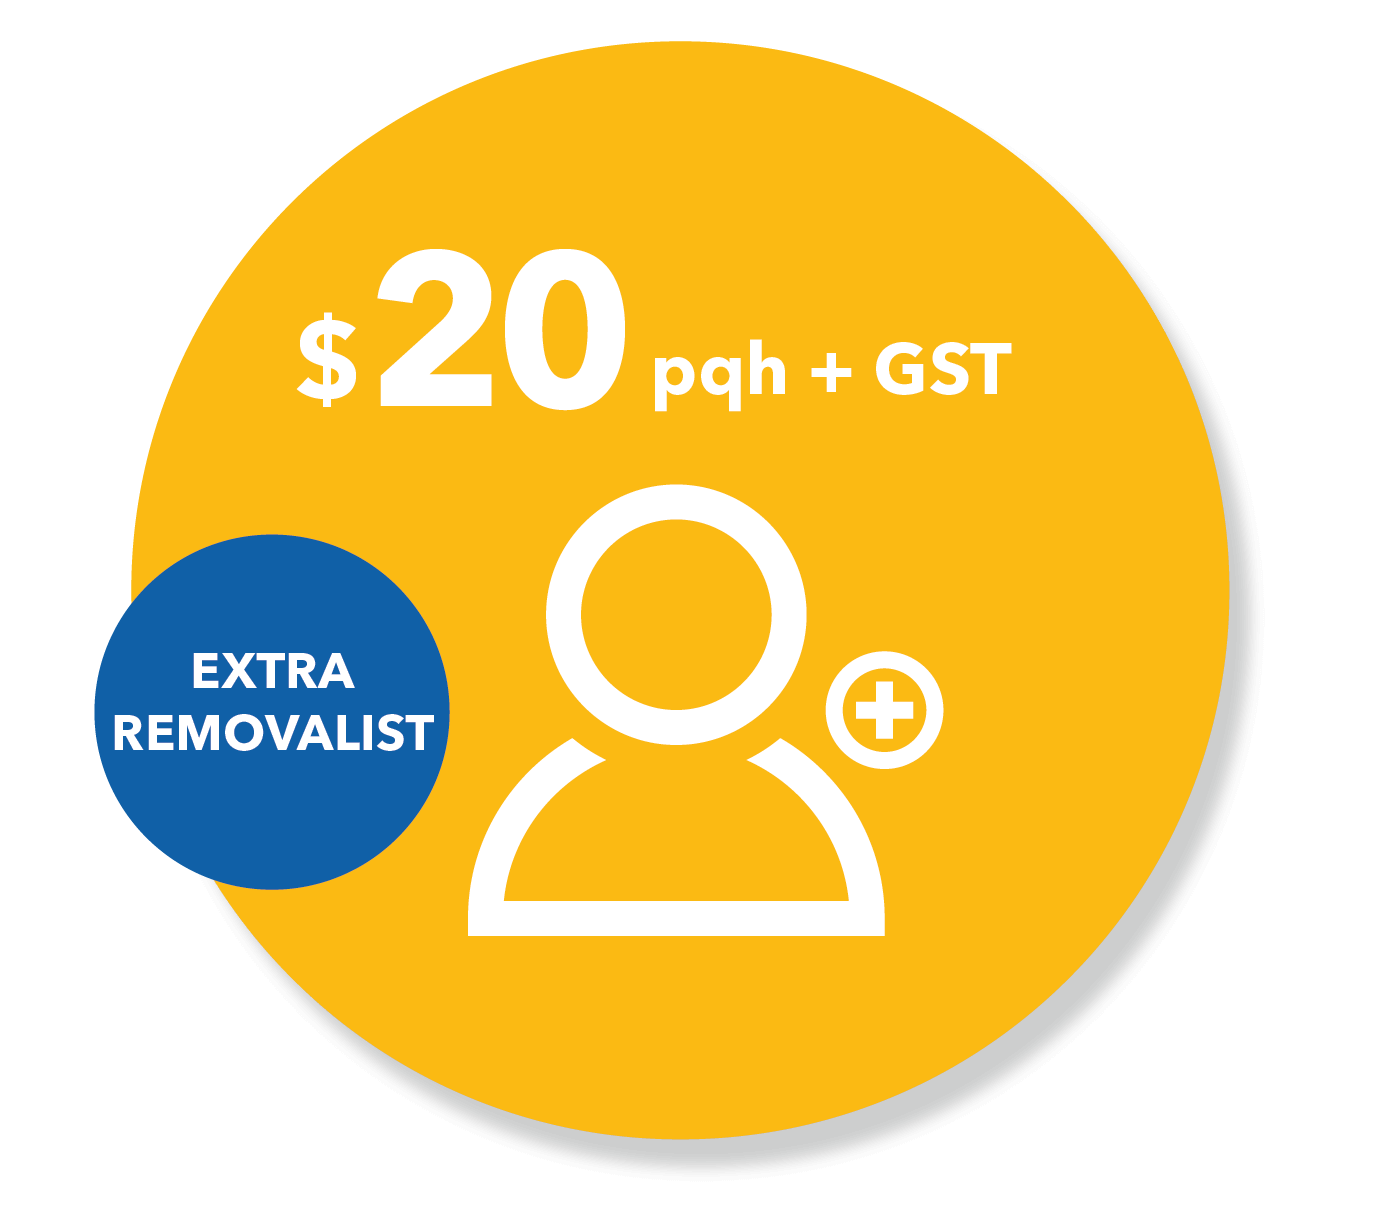 Sydney Removal Rates For Extra Removalist